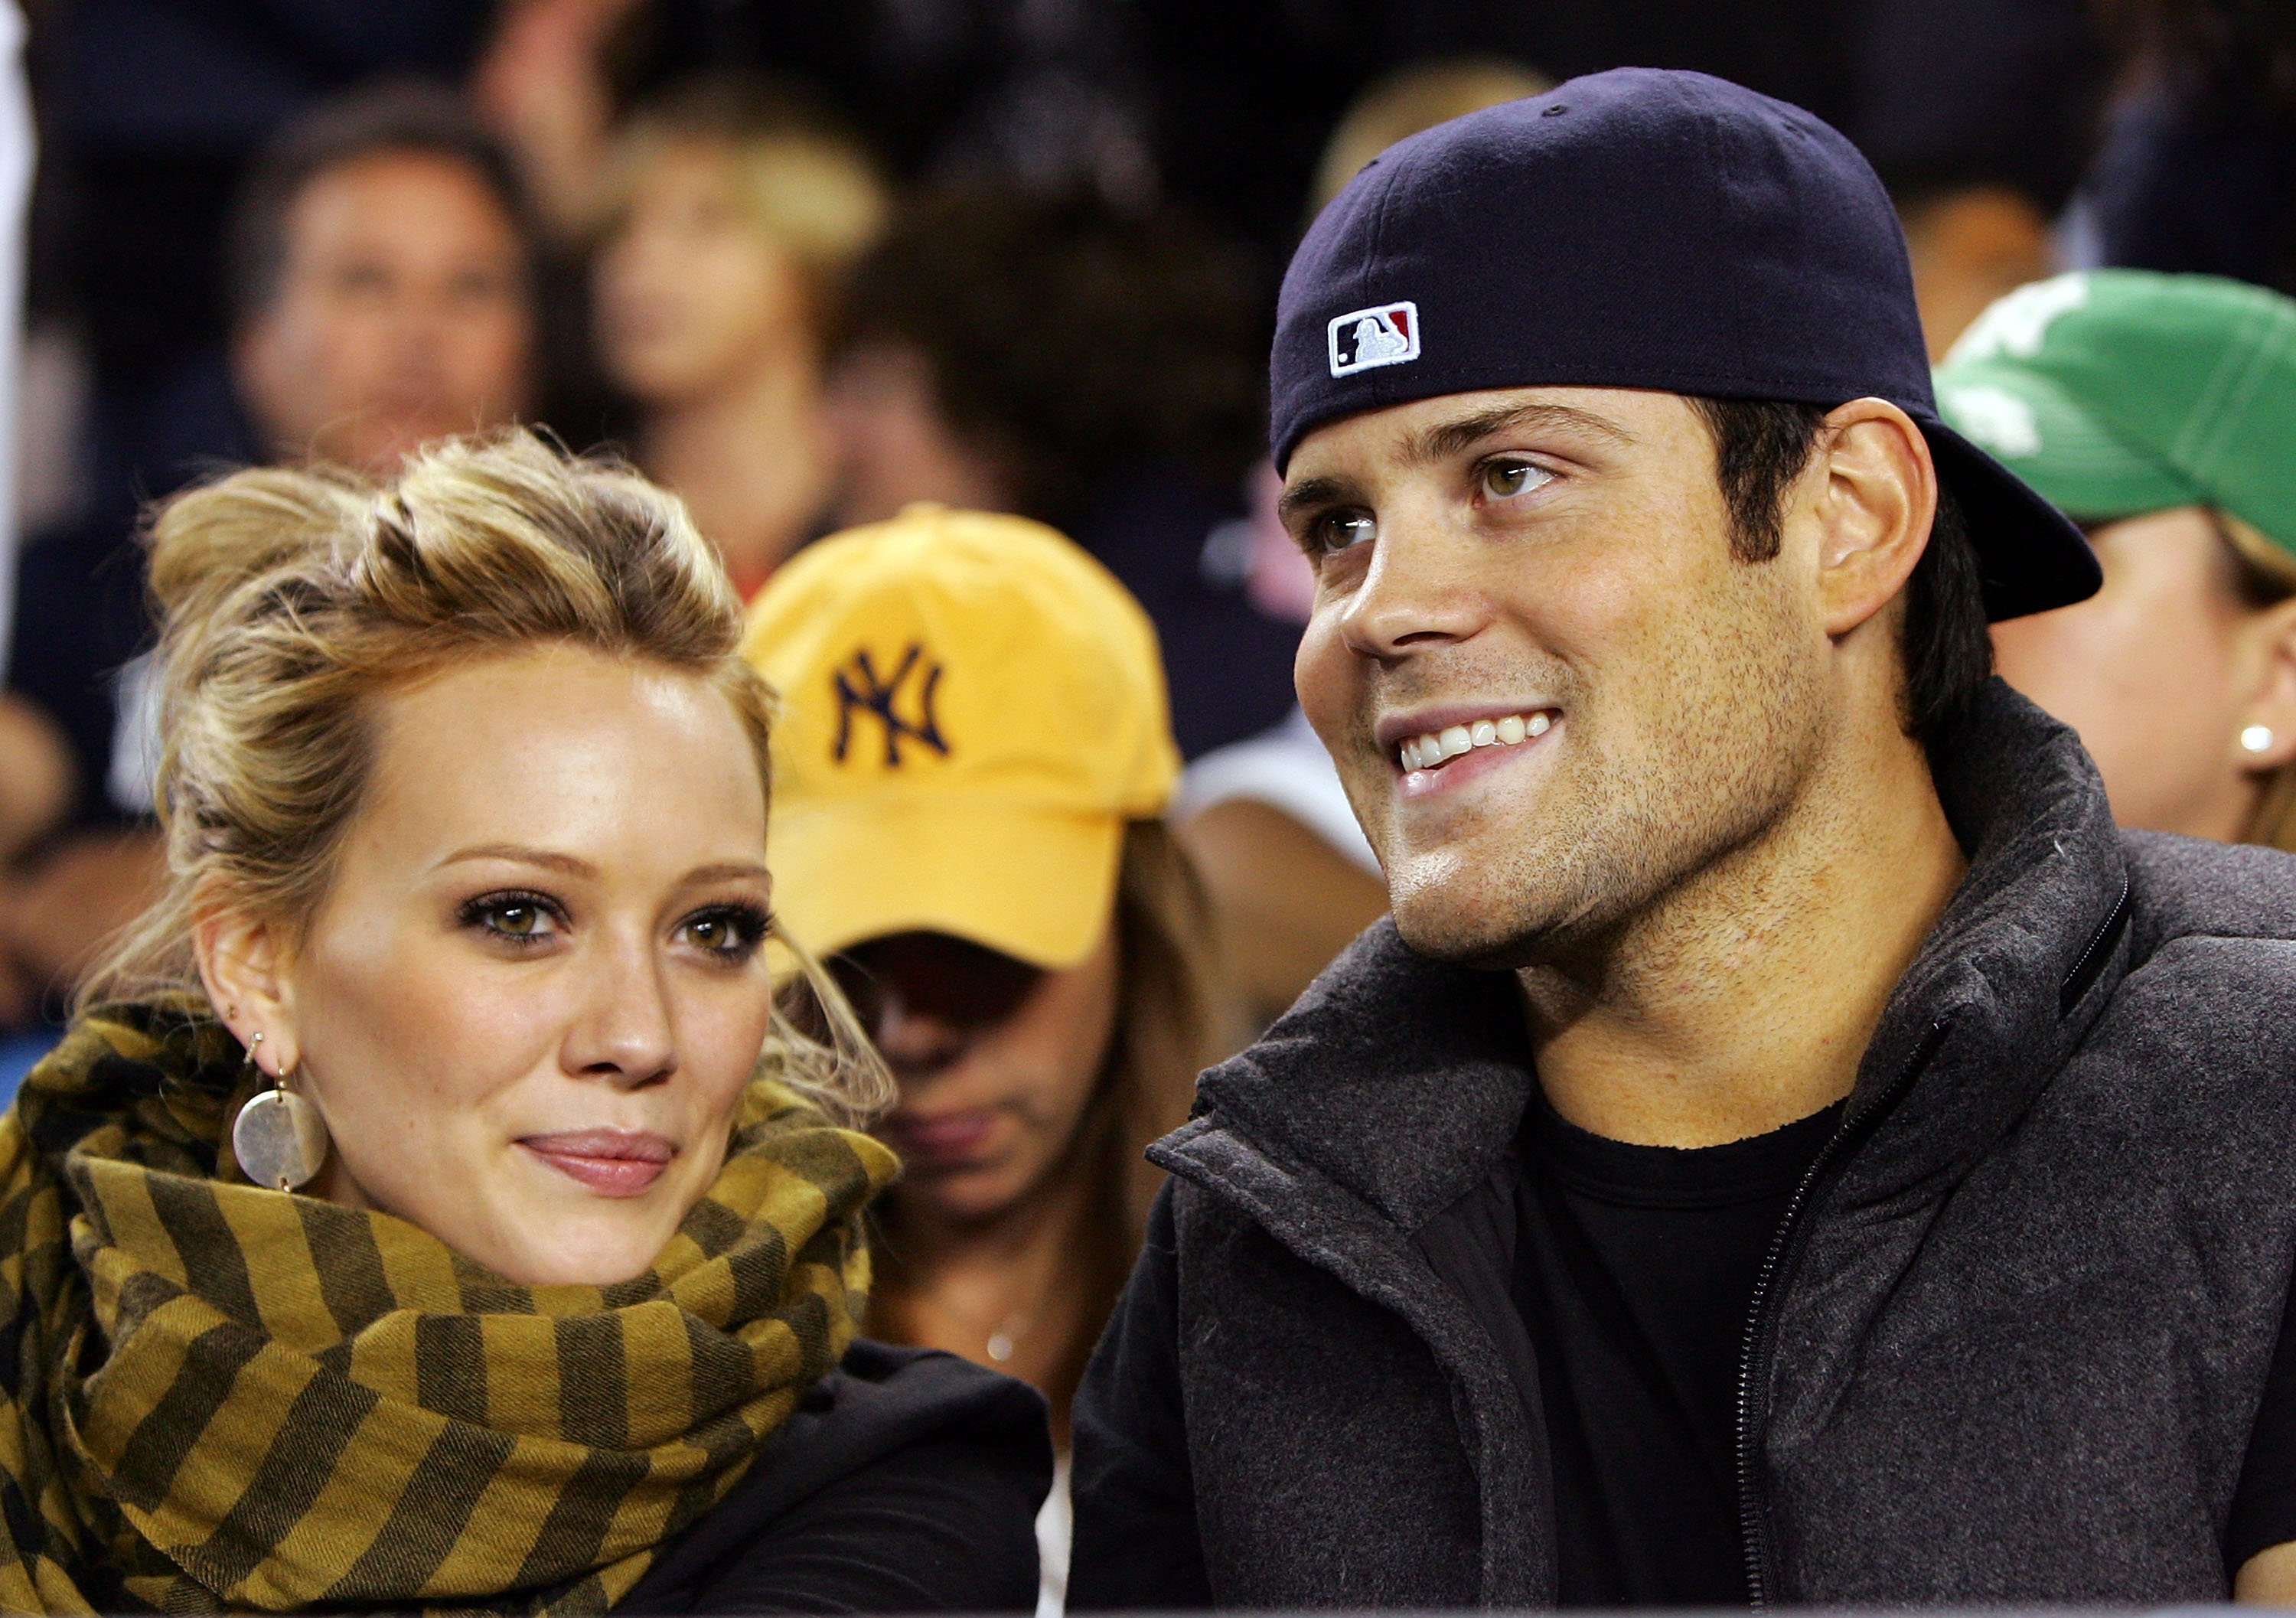 Hilary Duff and Mike Comrie attend the game on September 16, 2008 at Yankee Stadium. | Source: Getty Images.